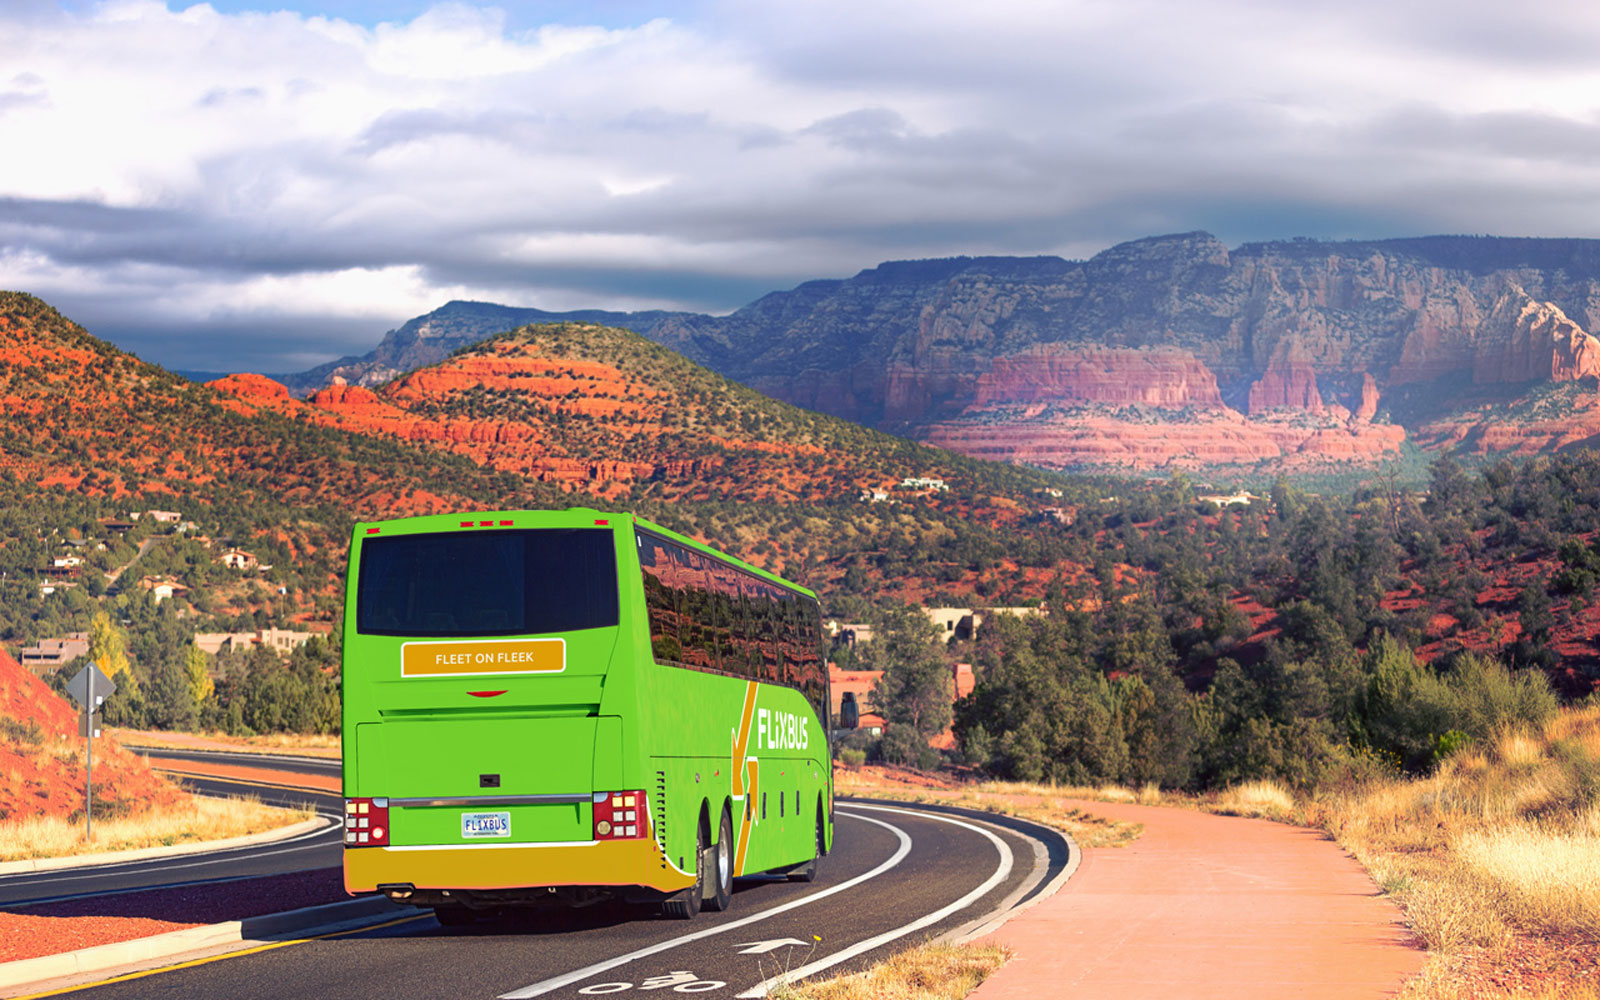 This Cool European Bus Company Will Launch in the U.S. With 99-Cent Trips